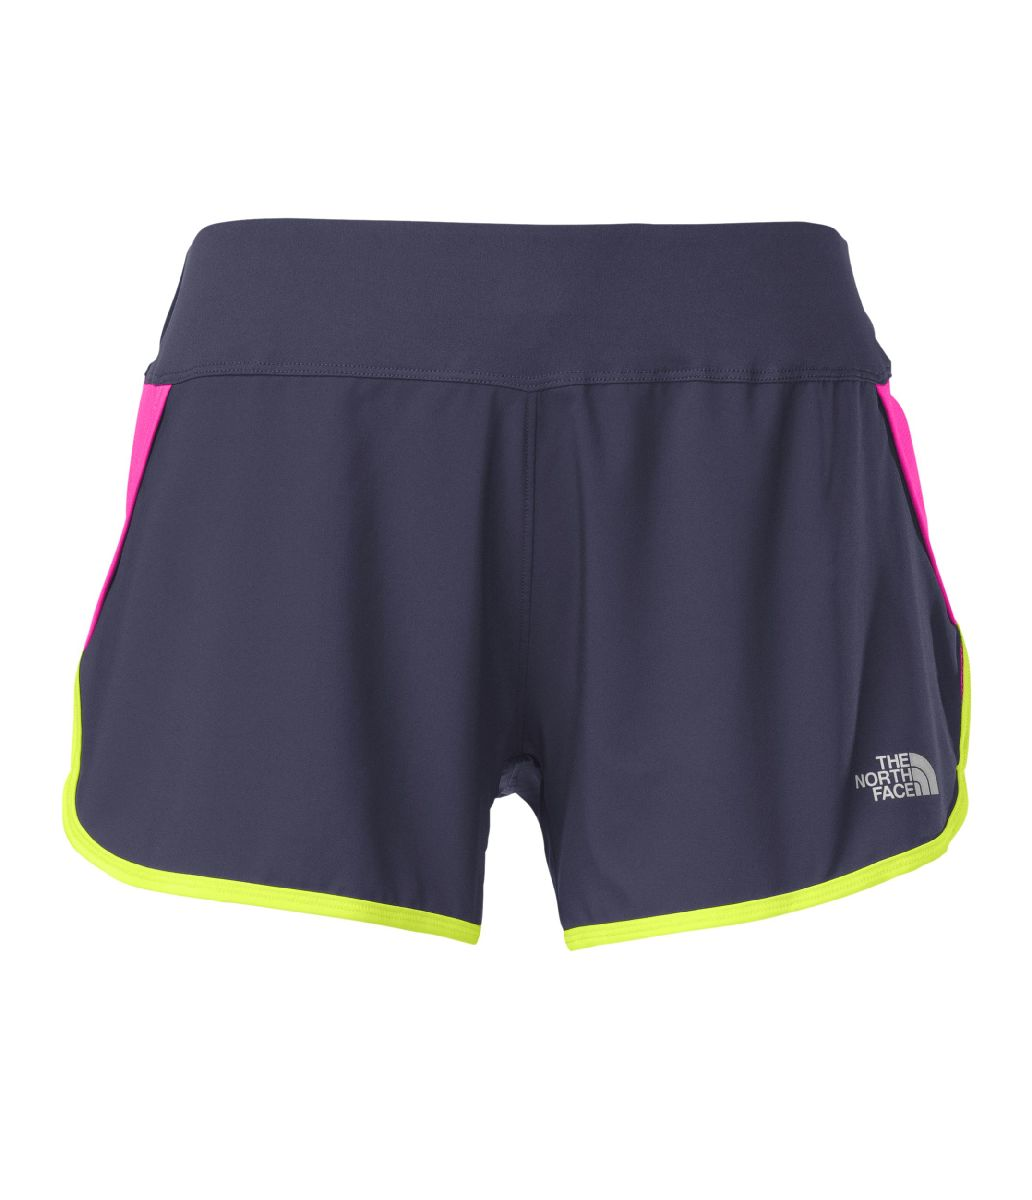 The North Face GTD Running Short Women's Size S InkSpotBlue GloPink U.S.A. & Canada